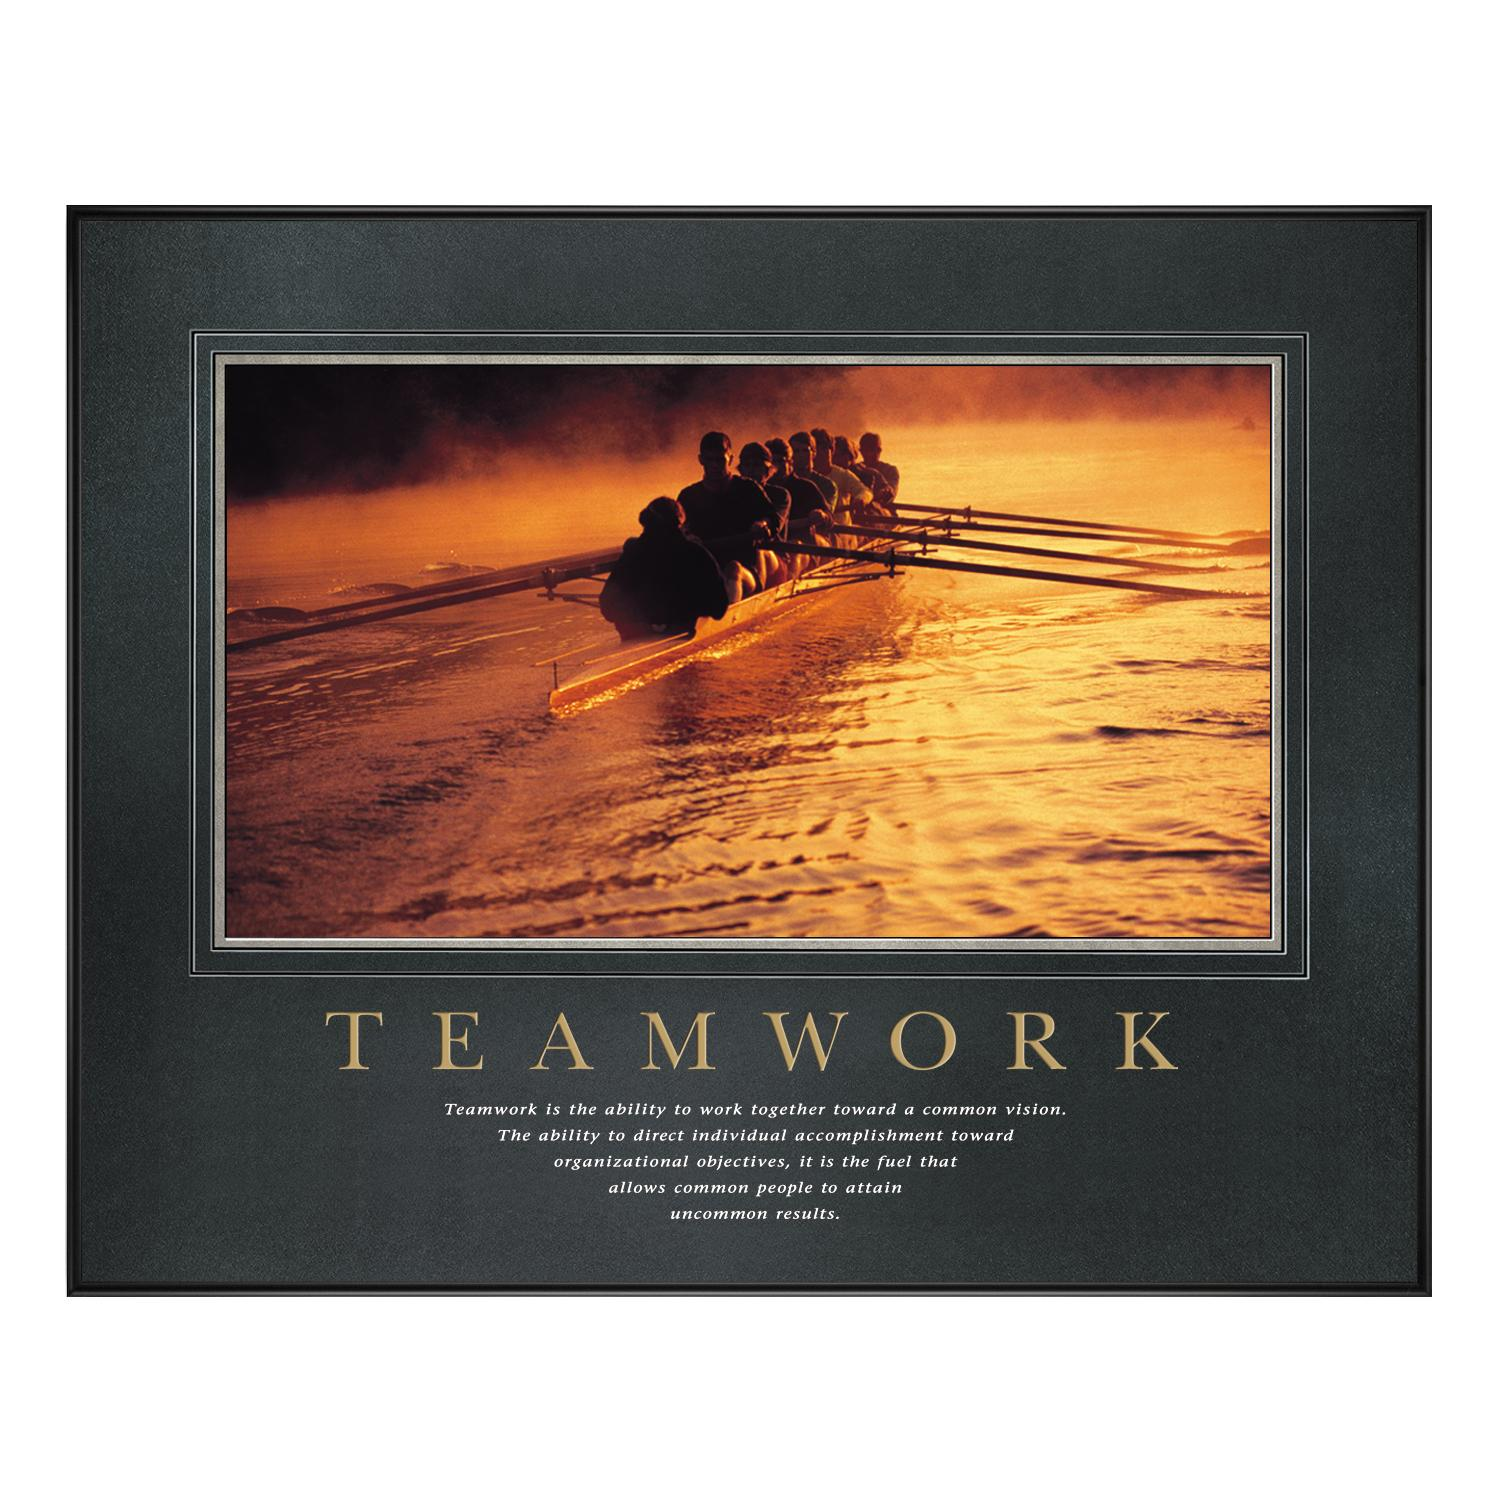 Demotivational Quotes For The Workplace Quotesgram: Motivational Teamwork Quotes. QuotesGram